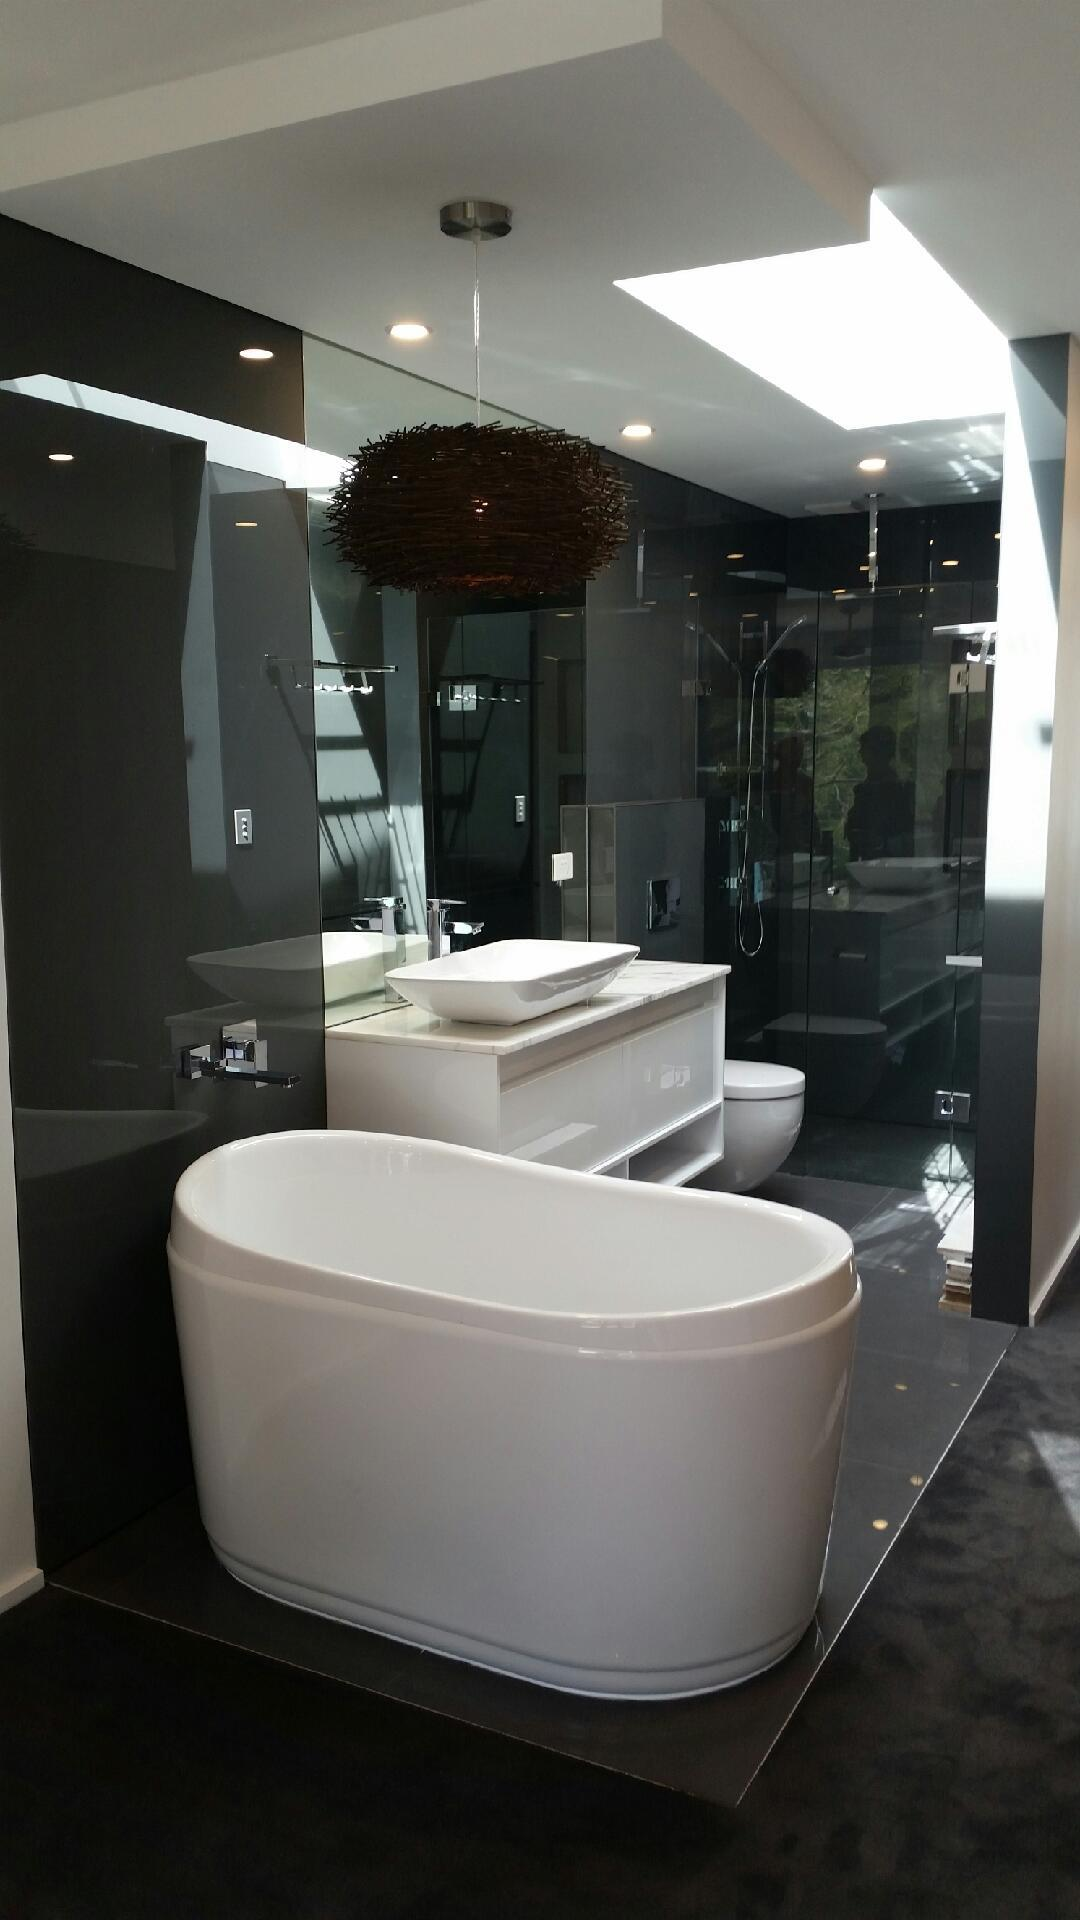 Full glass bathroom